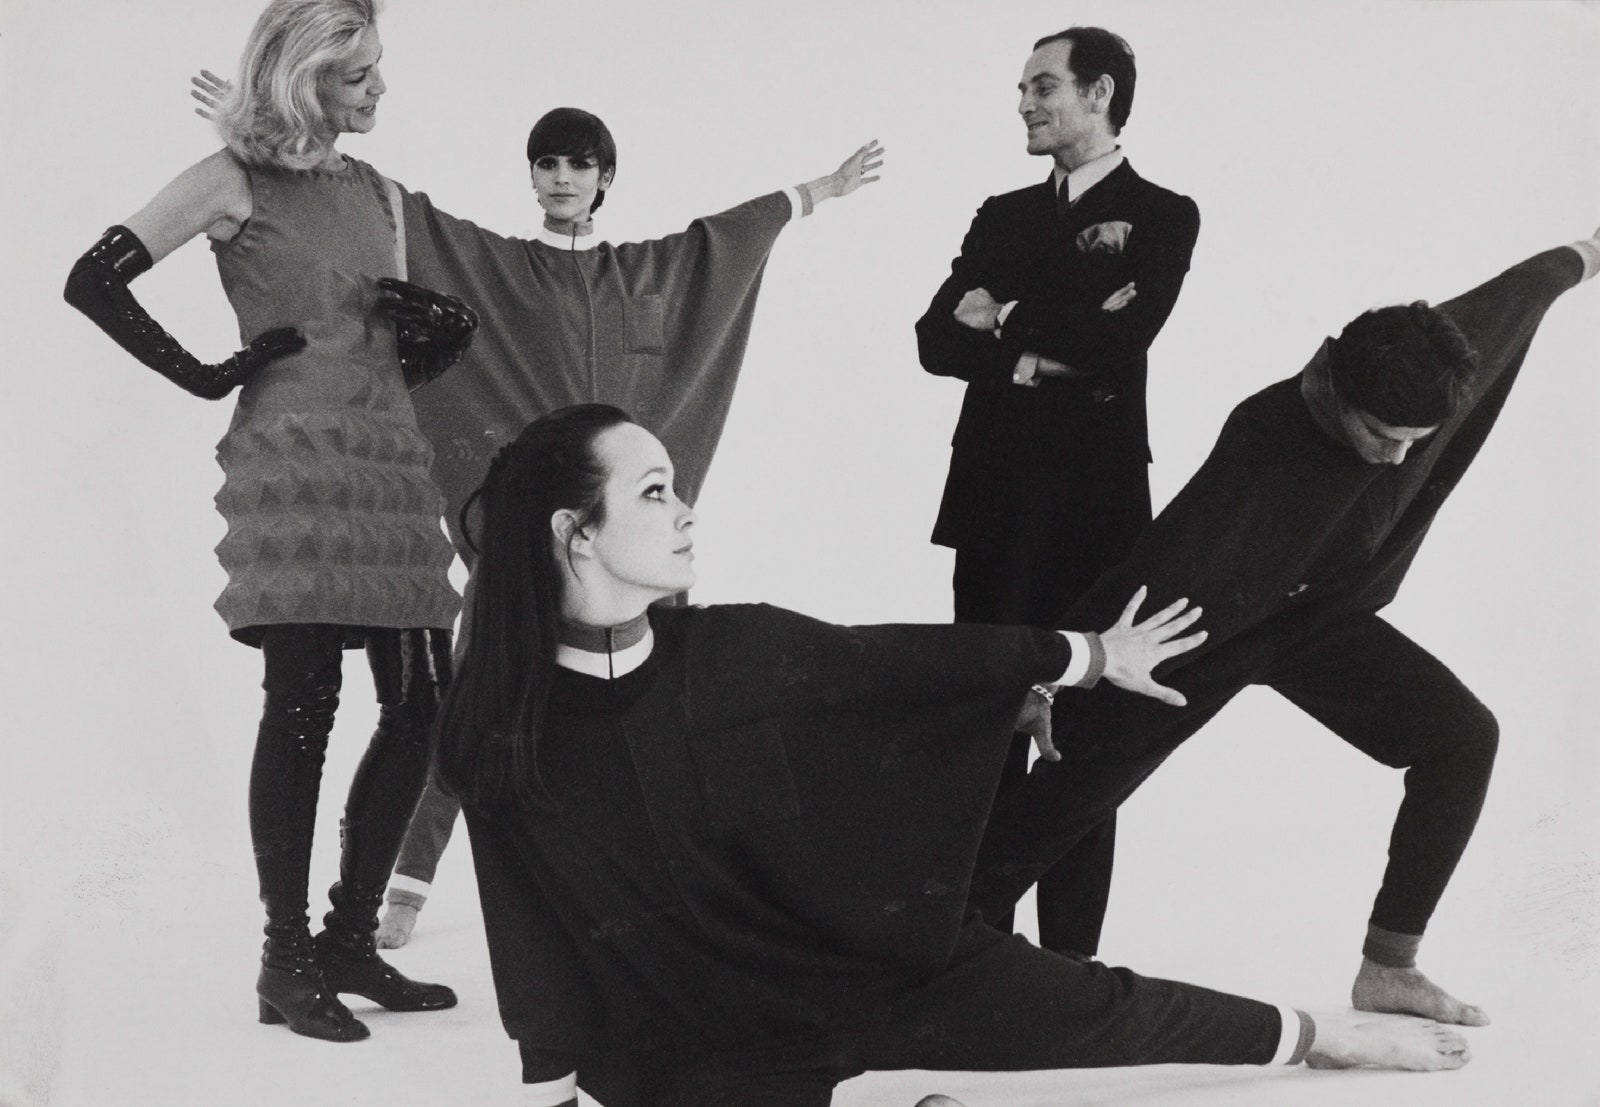 Pierre-Cardin-and-Lauren-Bacall-with-models-on-the-set-of-_Bacall-and-the-Boys,_-1968.-Photograph-by-Yoshi-Takata